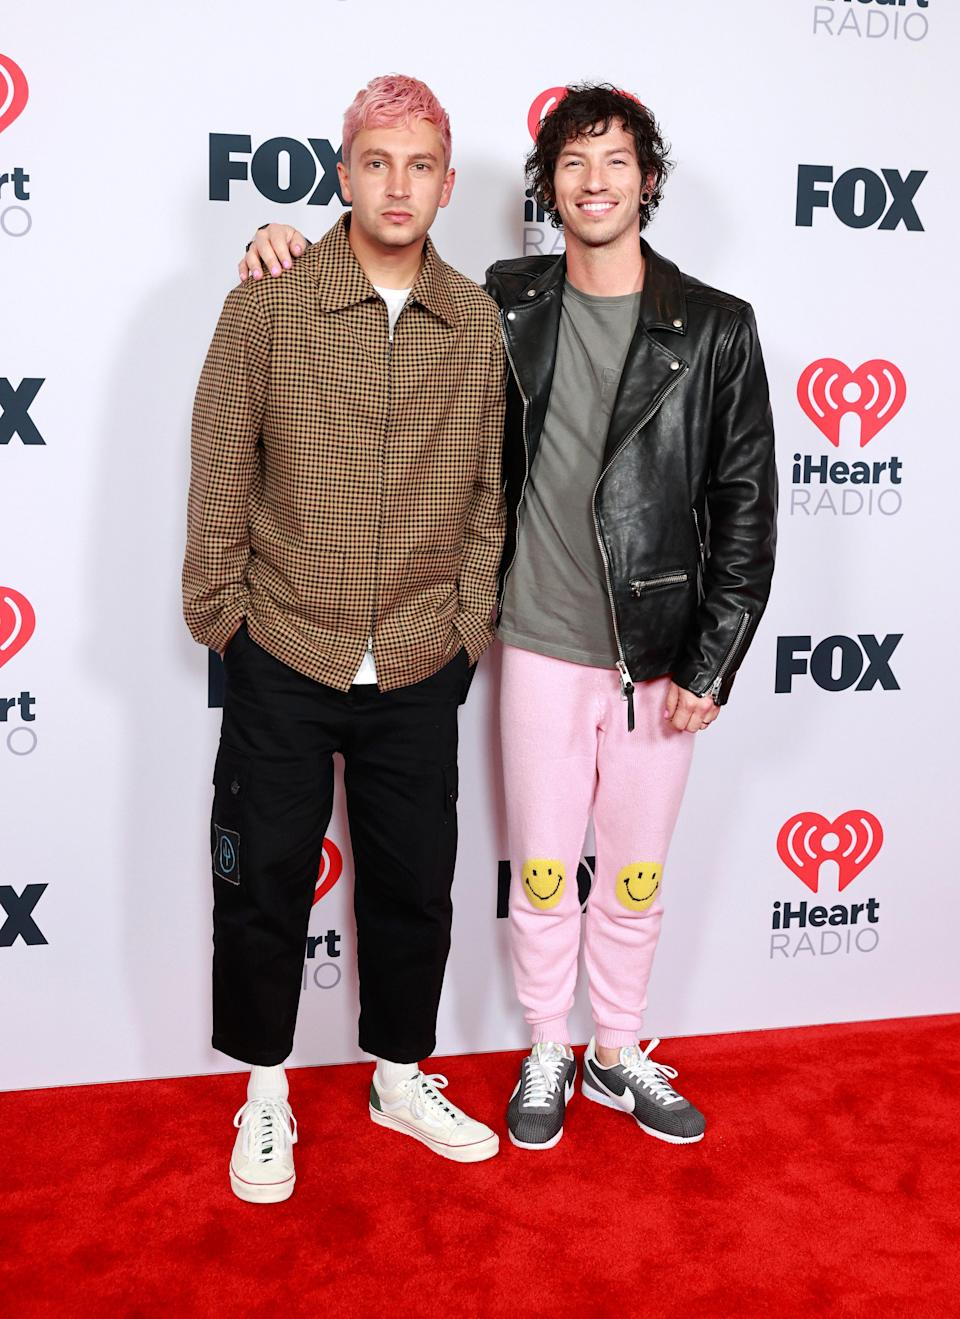 Twenty One Pilots members Tyler and Josh kept it cool and casual in sneakers for the red carpet.